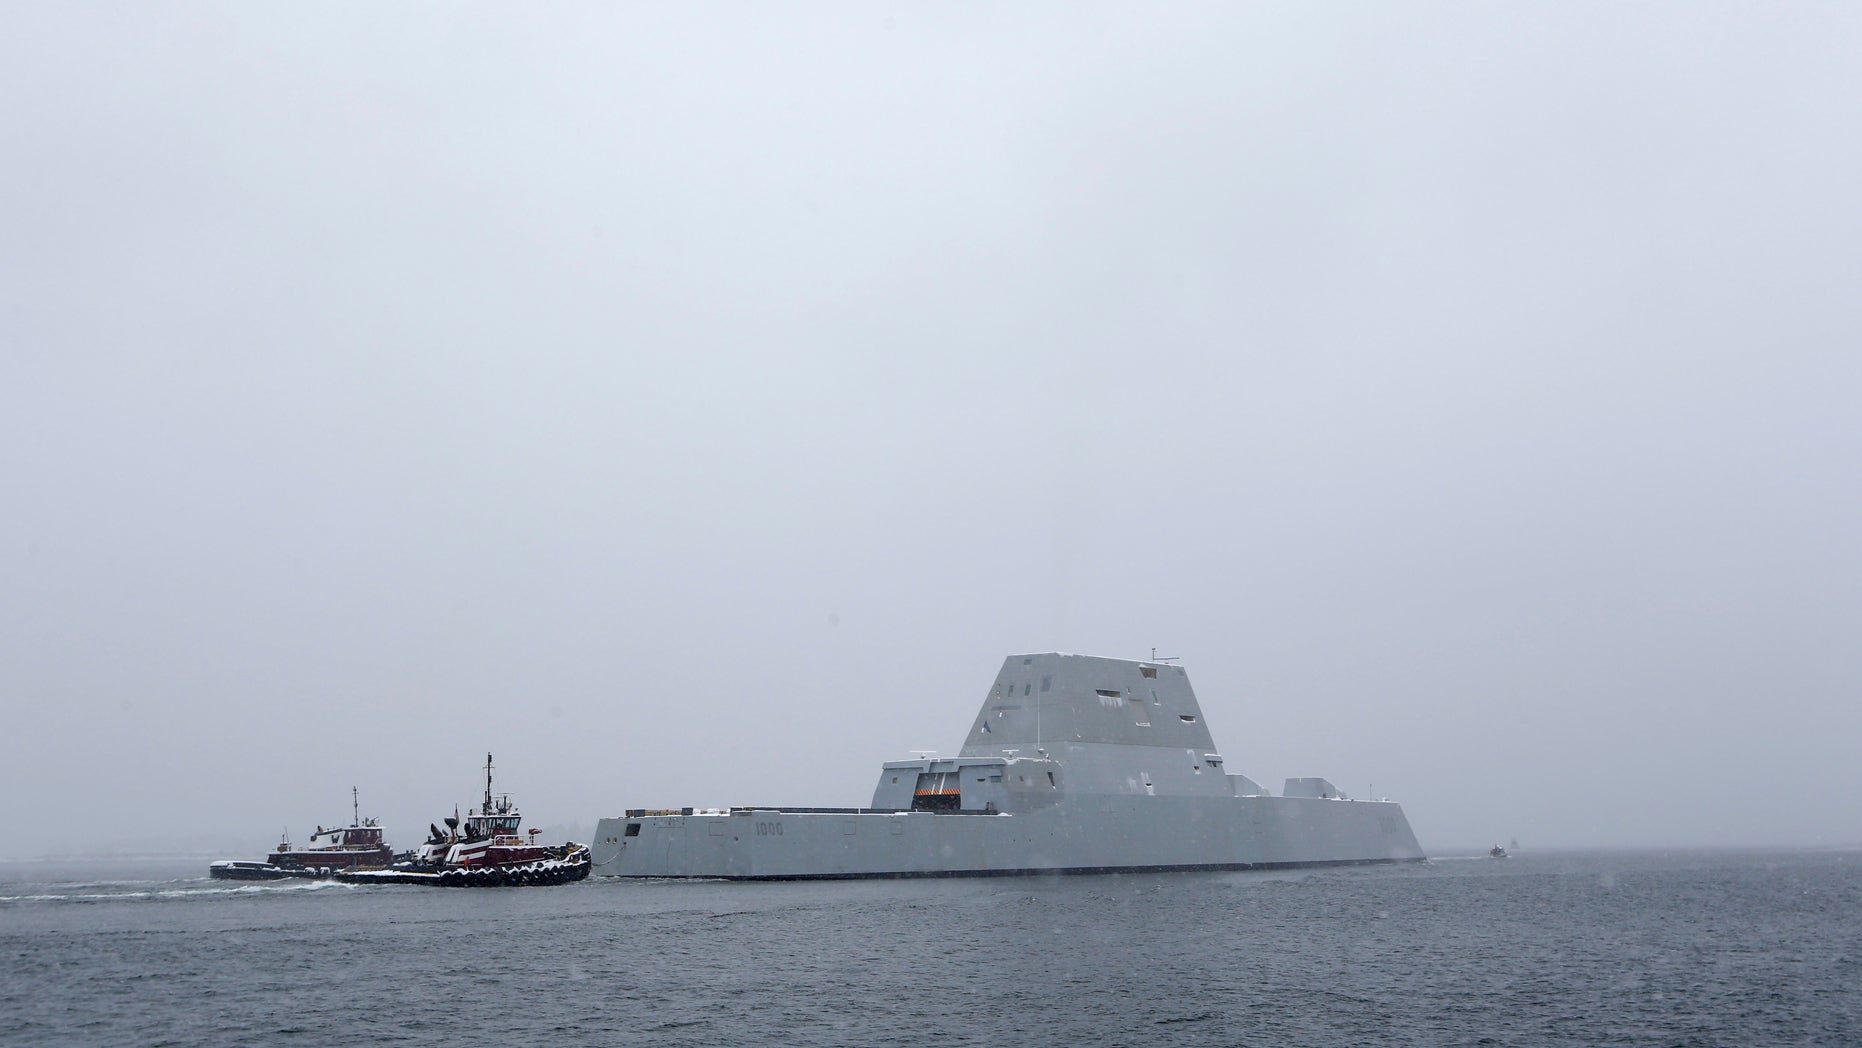 The USS Zumwalt is the Navy's new guided missile destroyer.